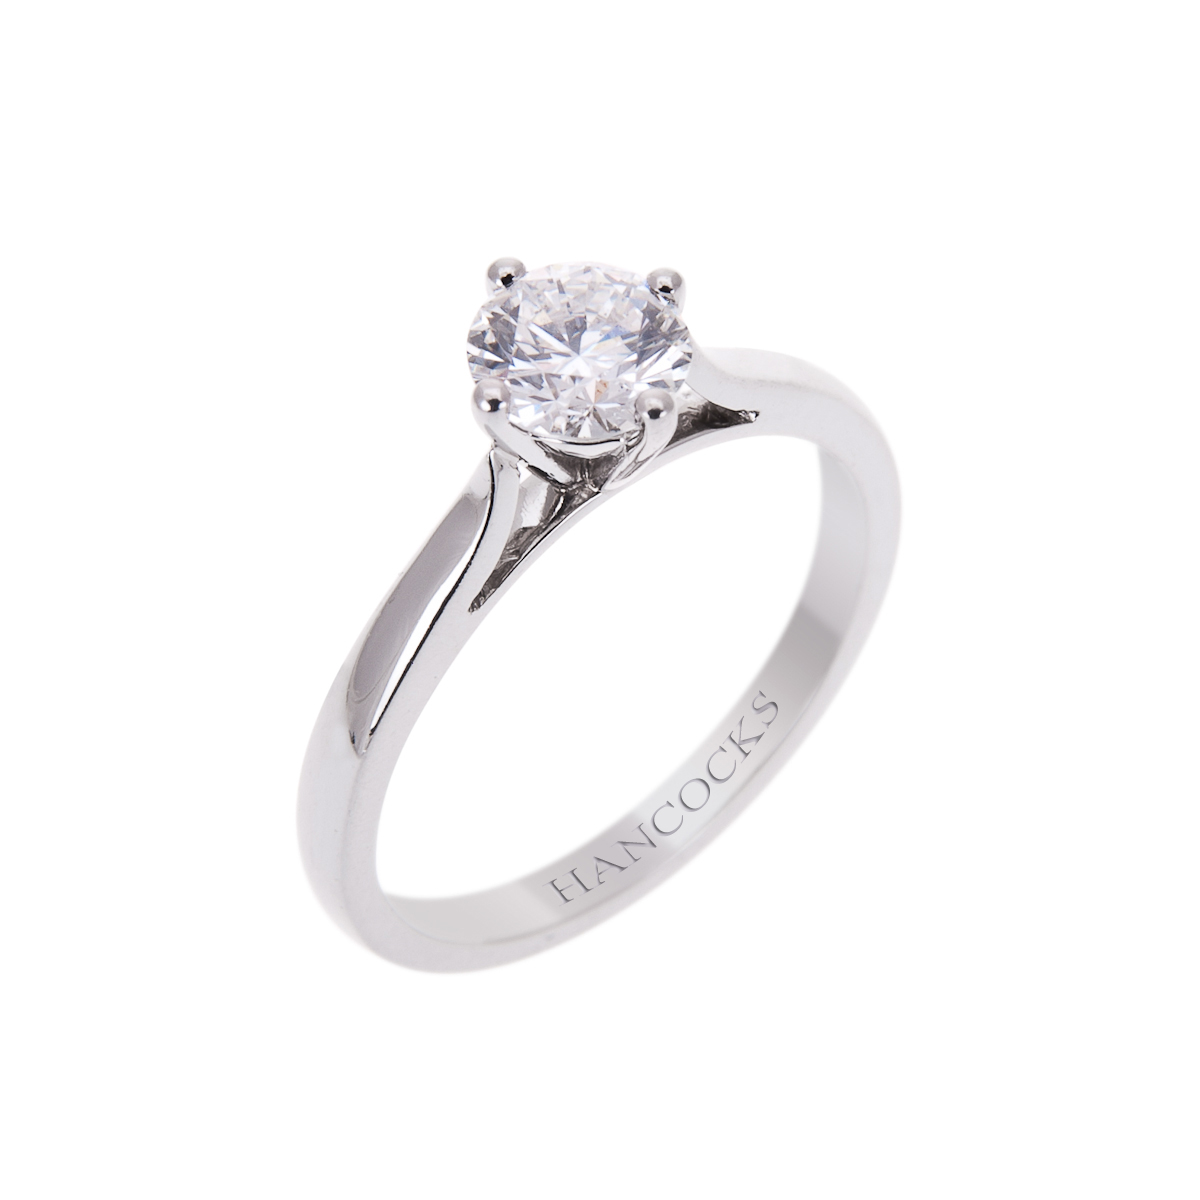 certificated d colour brilliant cut diamond single stone ring mounted in platinum